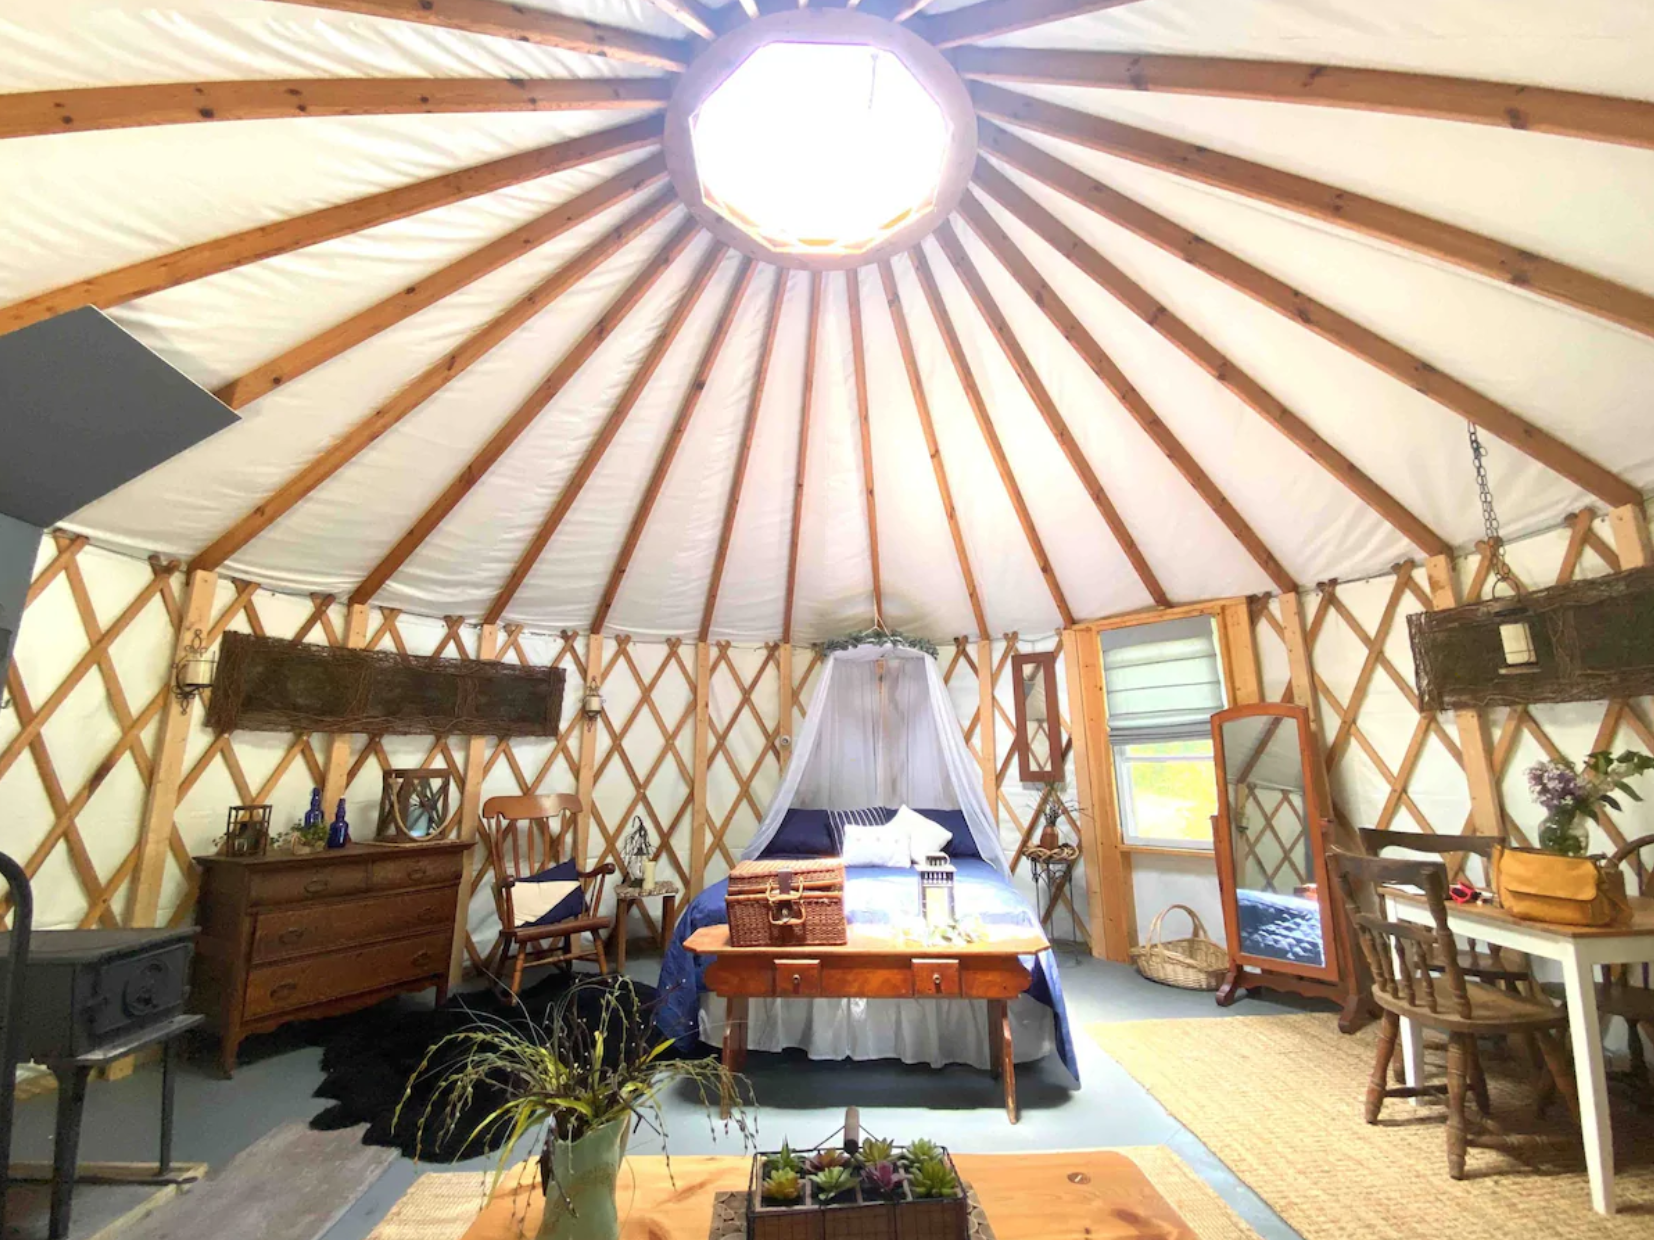 7 Great Glamping Sites In Pennsylvania Pennlive Com Made up of four modern yurts, each named after a portuguese river with a unique color scheme, quinta m is located on a country. pennlive com